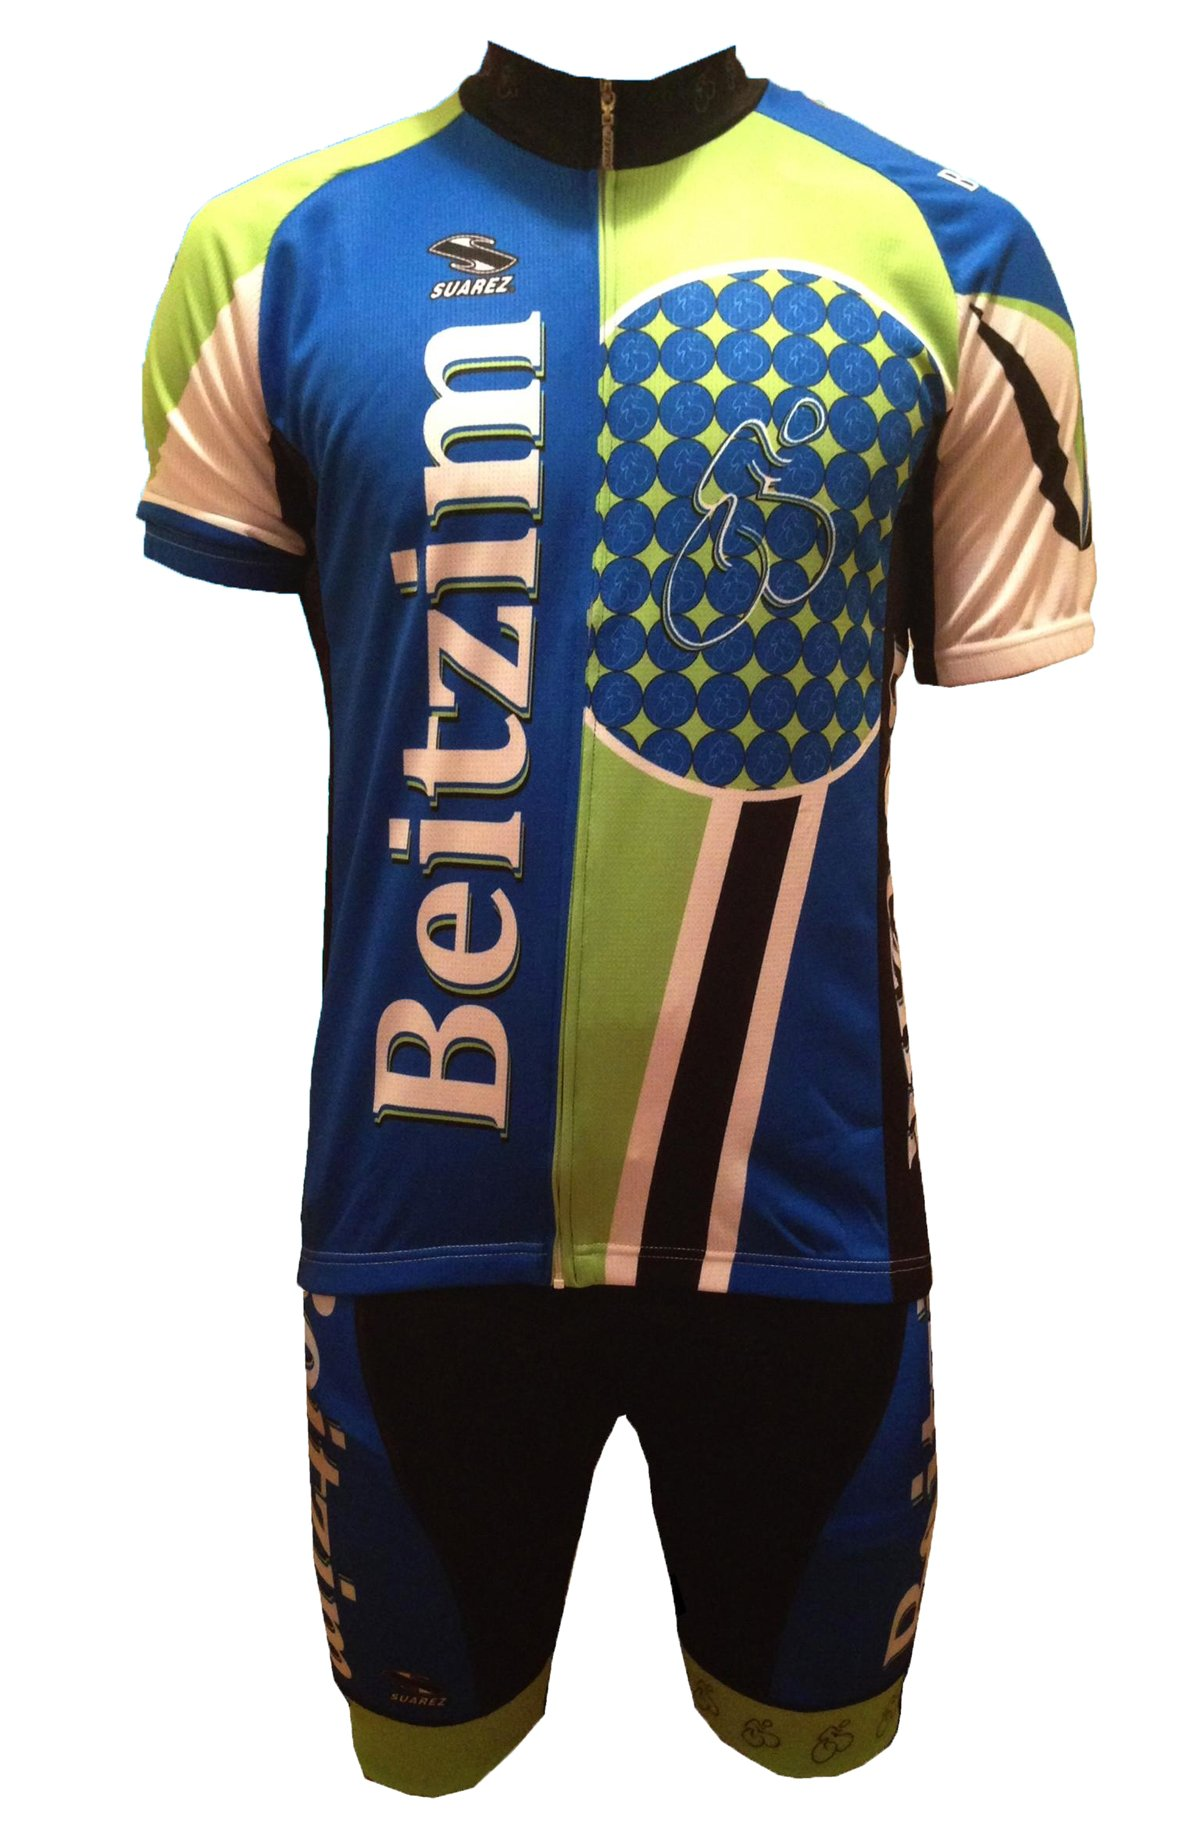 Men's Pro Cycling Jersey and Bib Shorts Set: Beitzim Team Apparel Blue